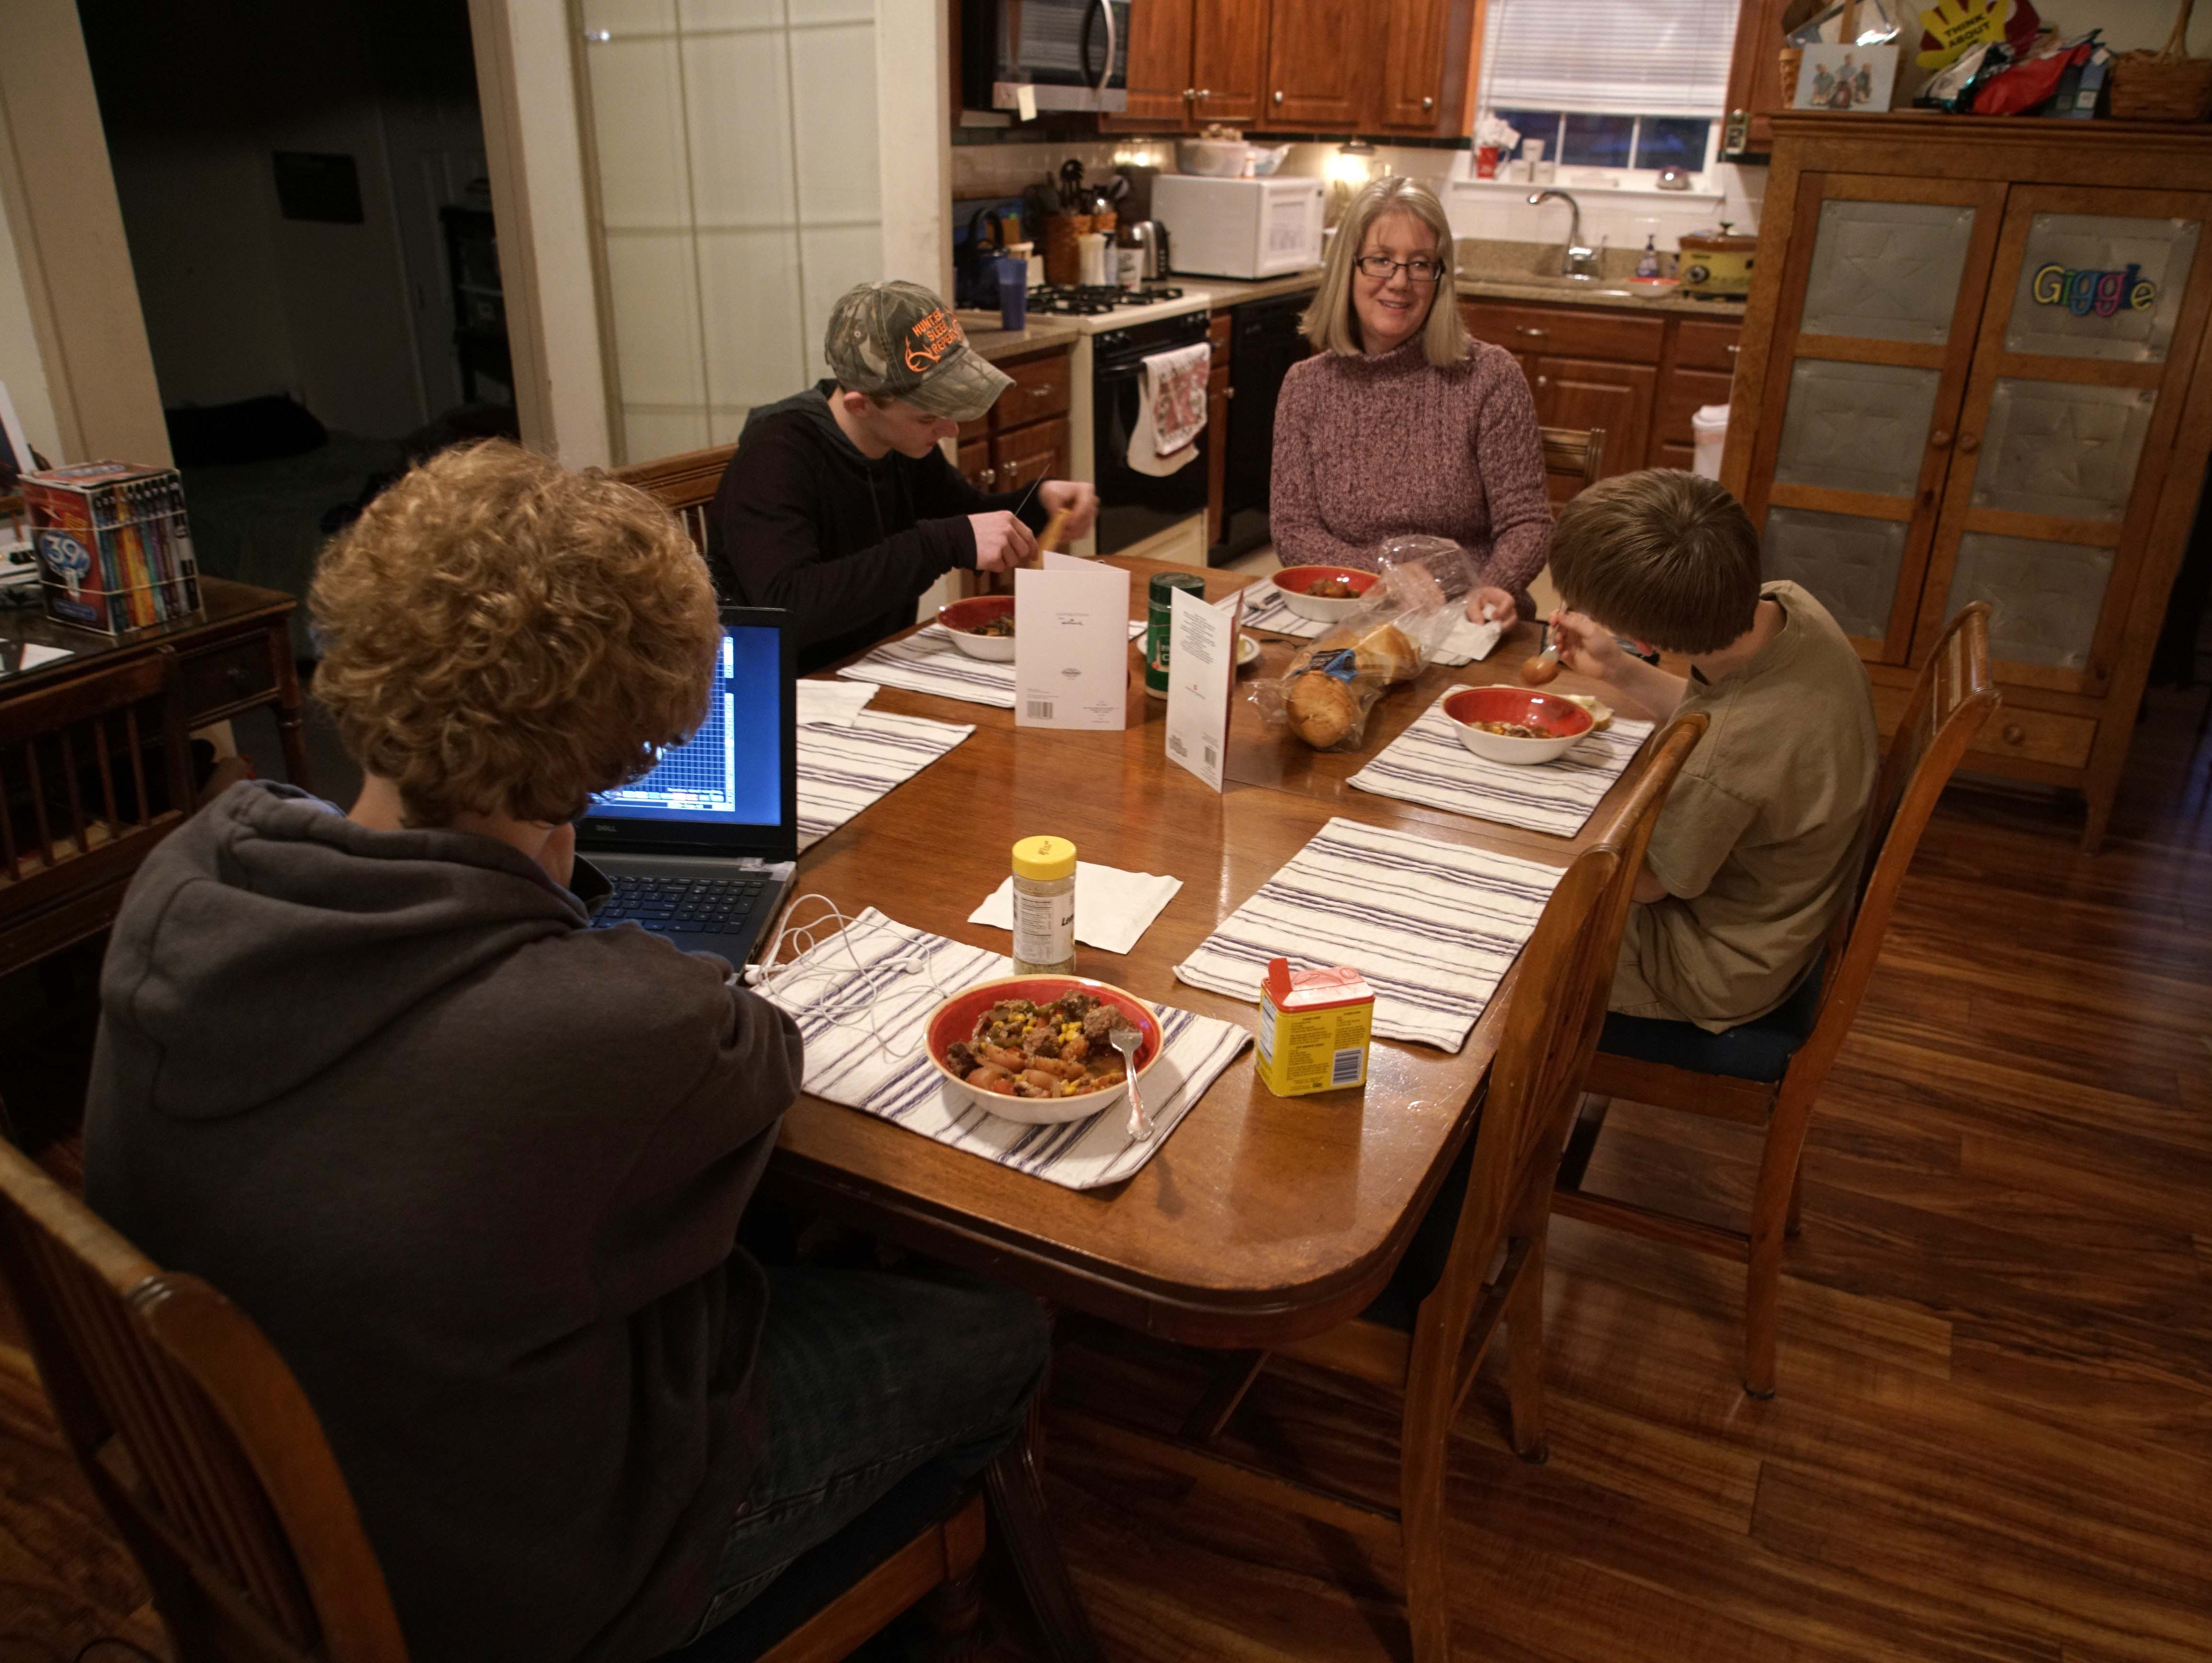 A growing contingent in Delaware, largely due to addiction, is more than 8,000 households headed by grandparents.